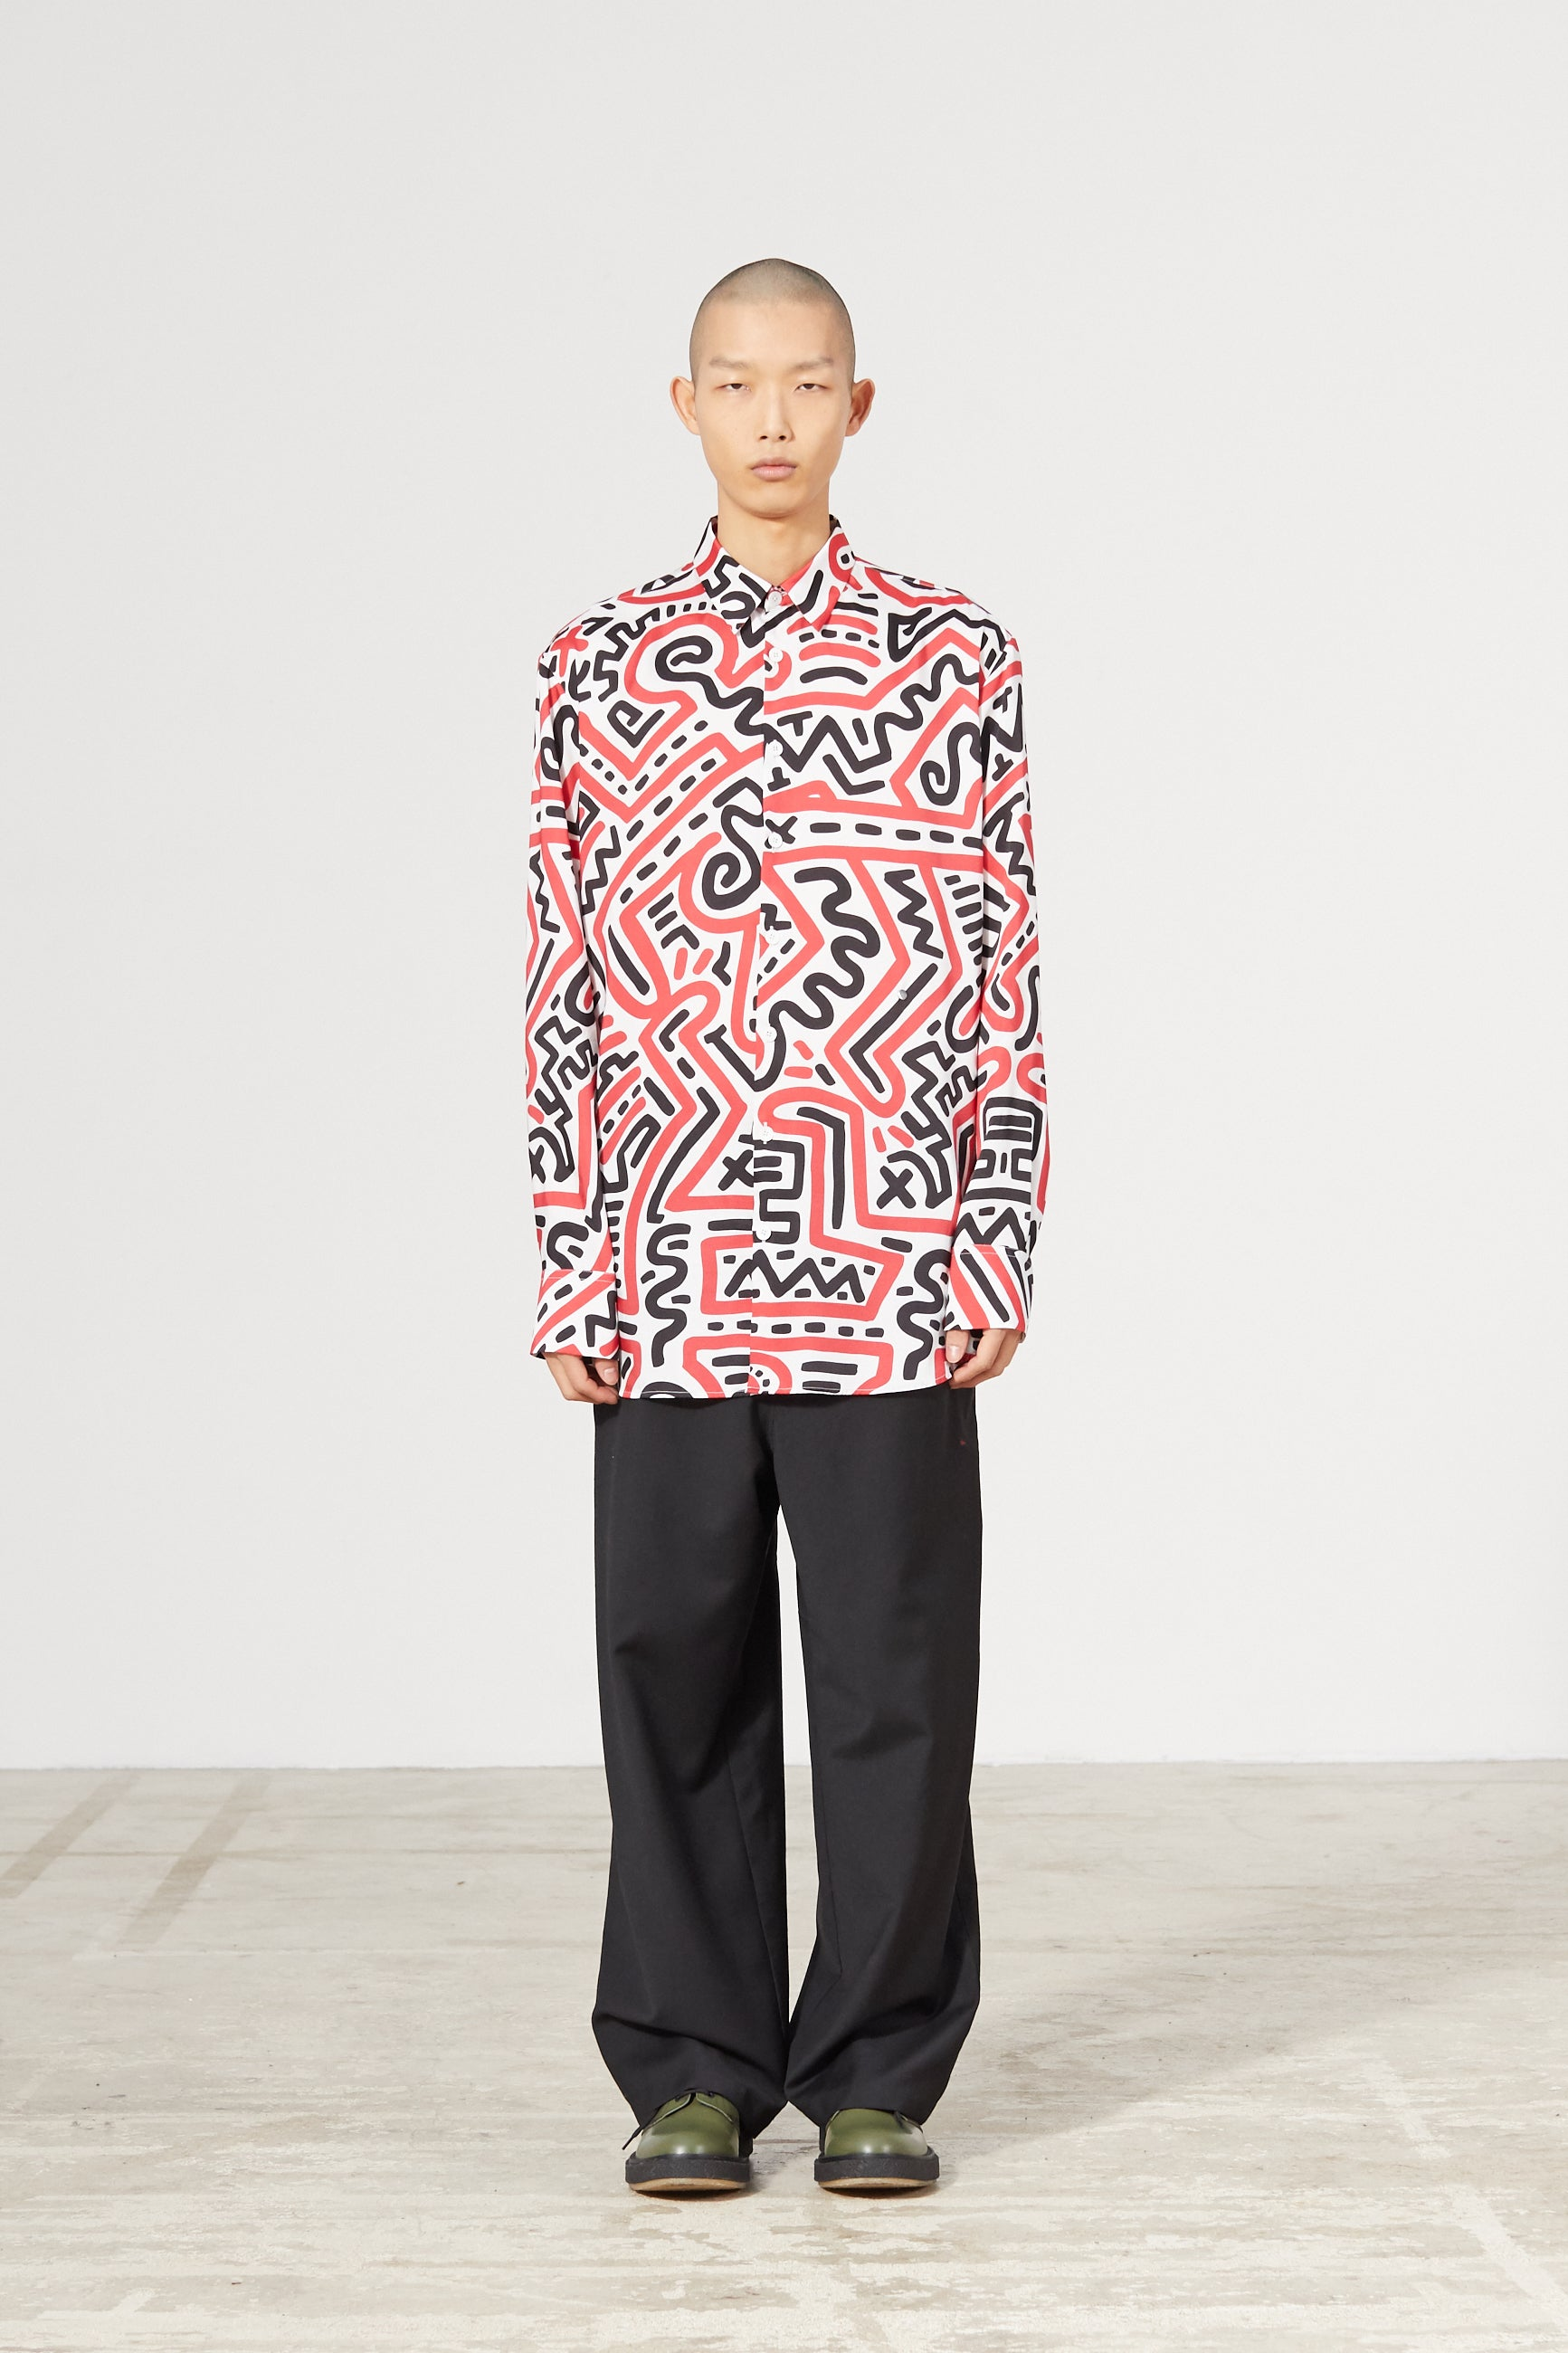 REFLET ALL OVER KEITH HARING SHIRT